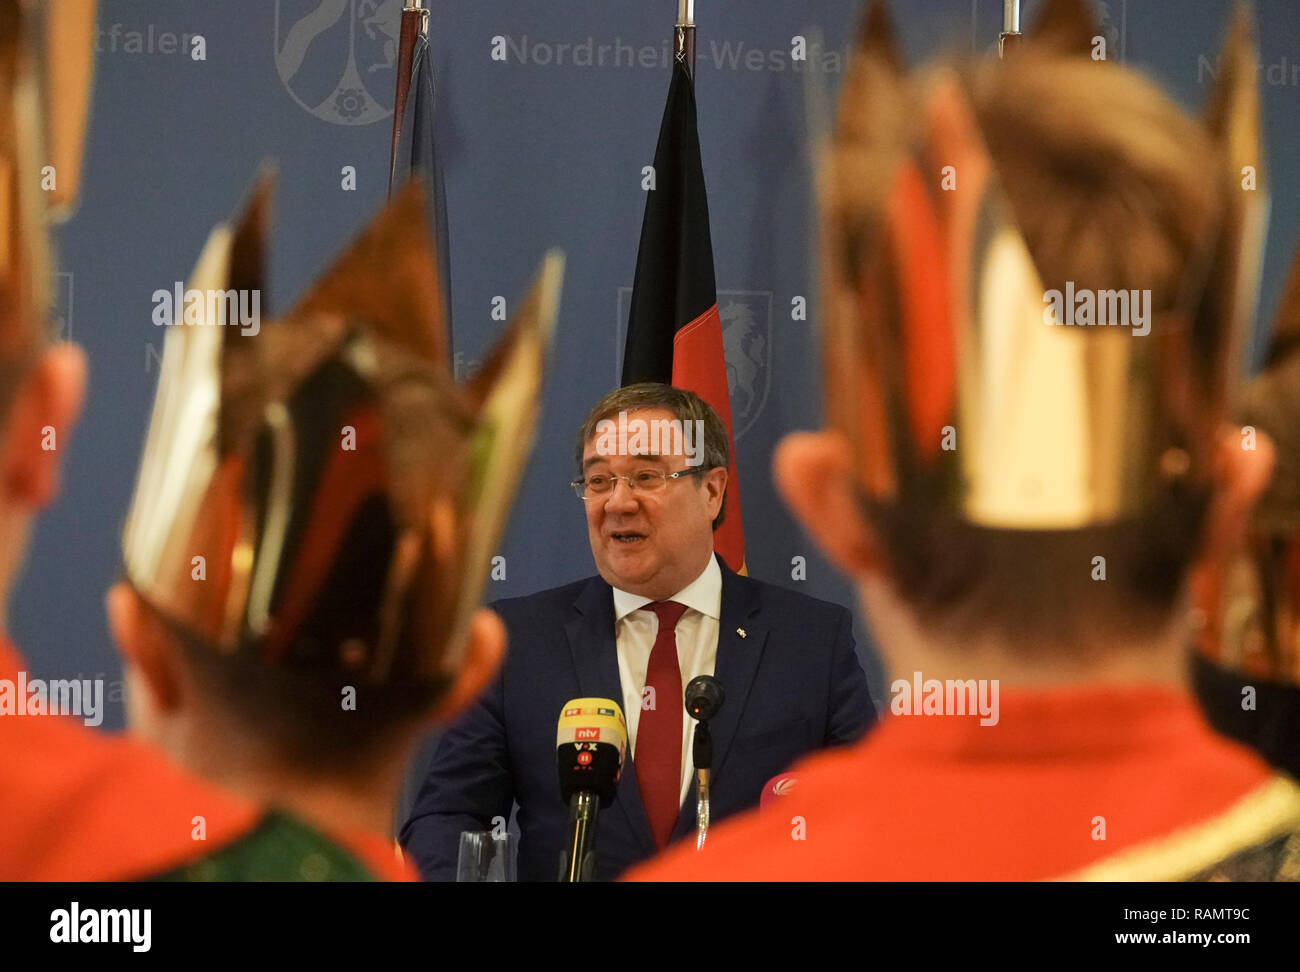 04 January 2019, North Rhine-Westphalia, Düsseldorf: North Rhine-Westphalia's Prime Minister Armin Laschet (CDU) welcomes Sternsinger to the State Chancellery in Düsseldorf. Laschet praised the use of the star singers as 'lived charity'. Photo: David Schwarz/dpa - Stock Image